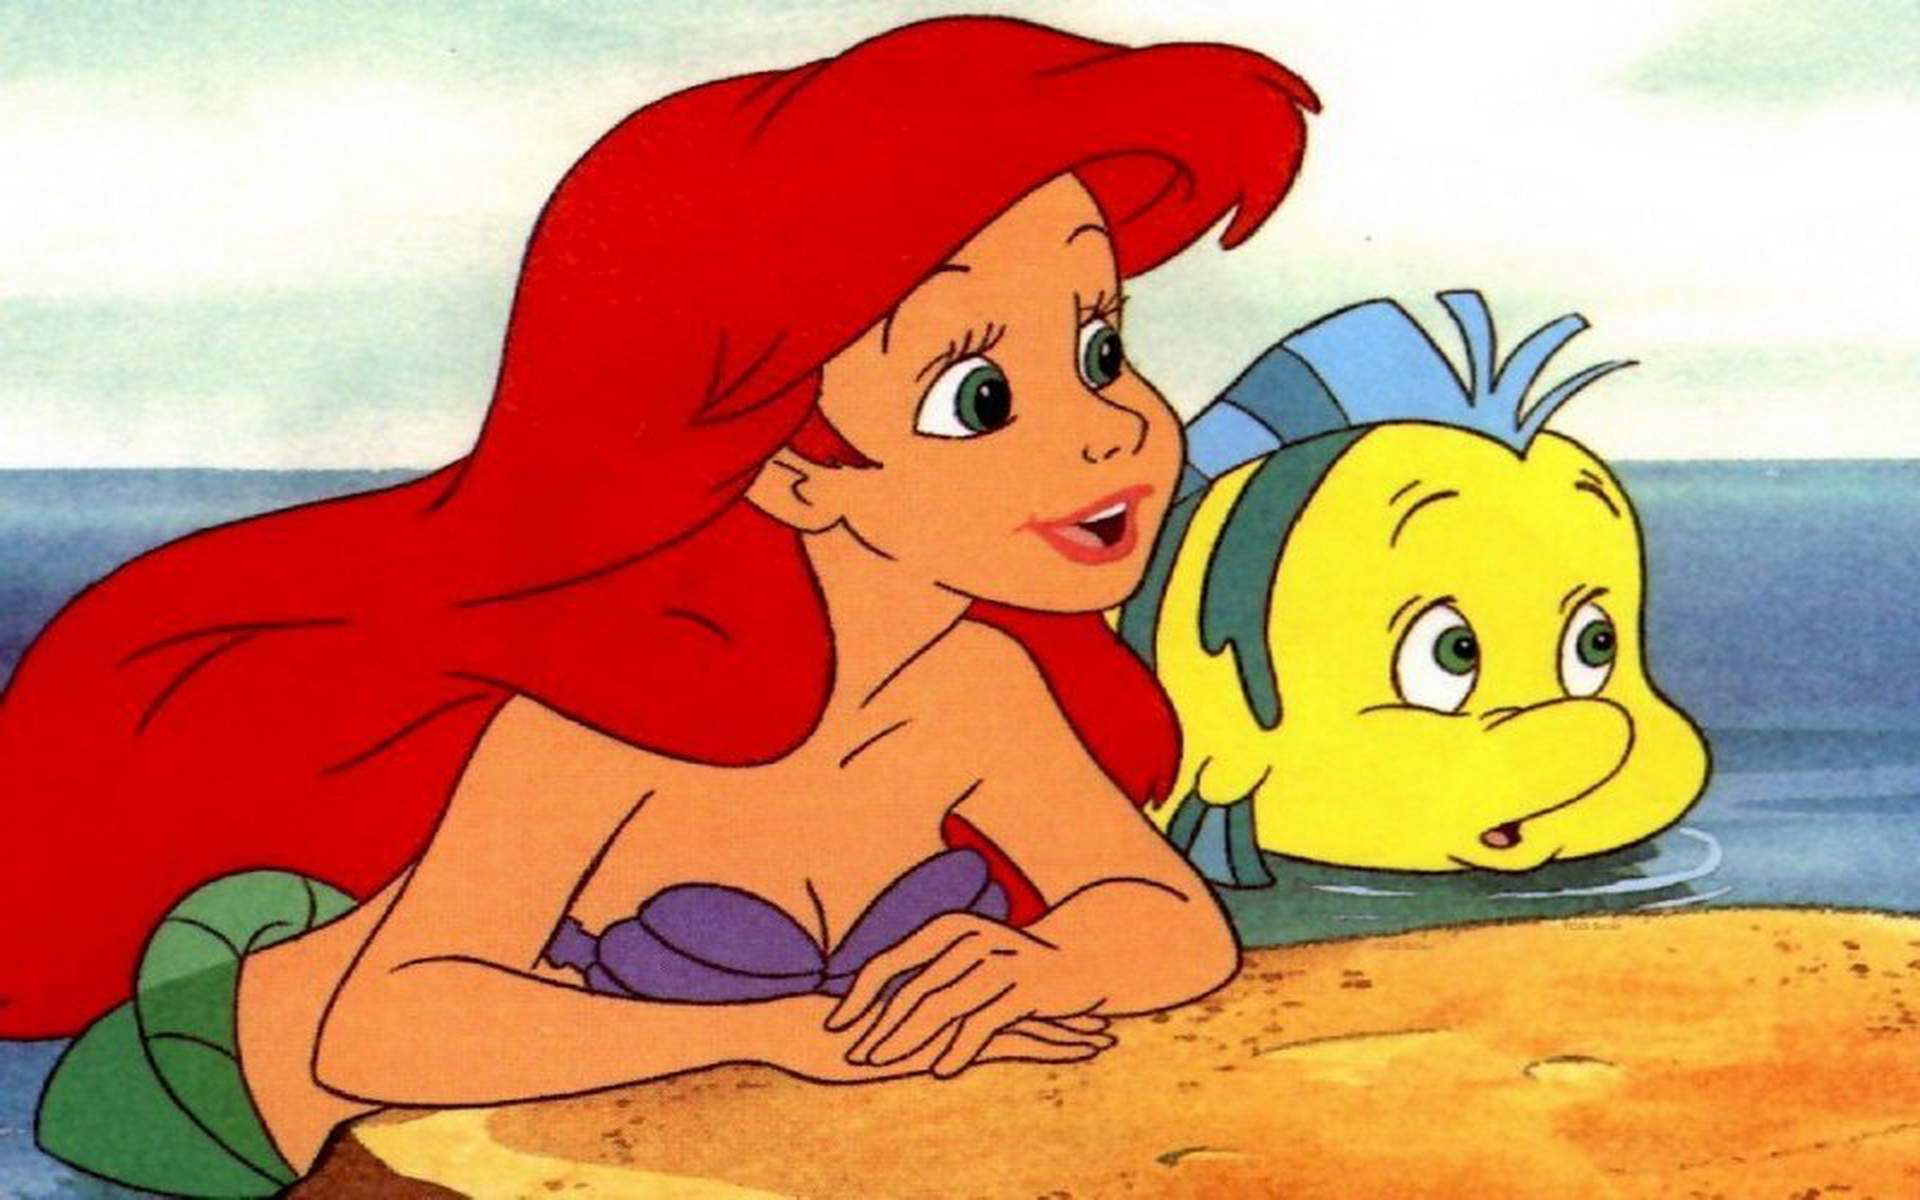 Apologise, Little mermaid princess fake nudes right!